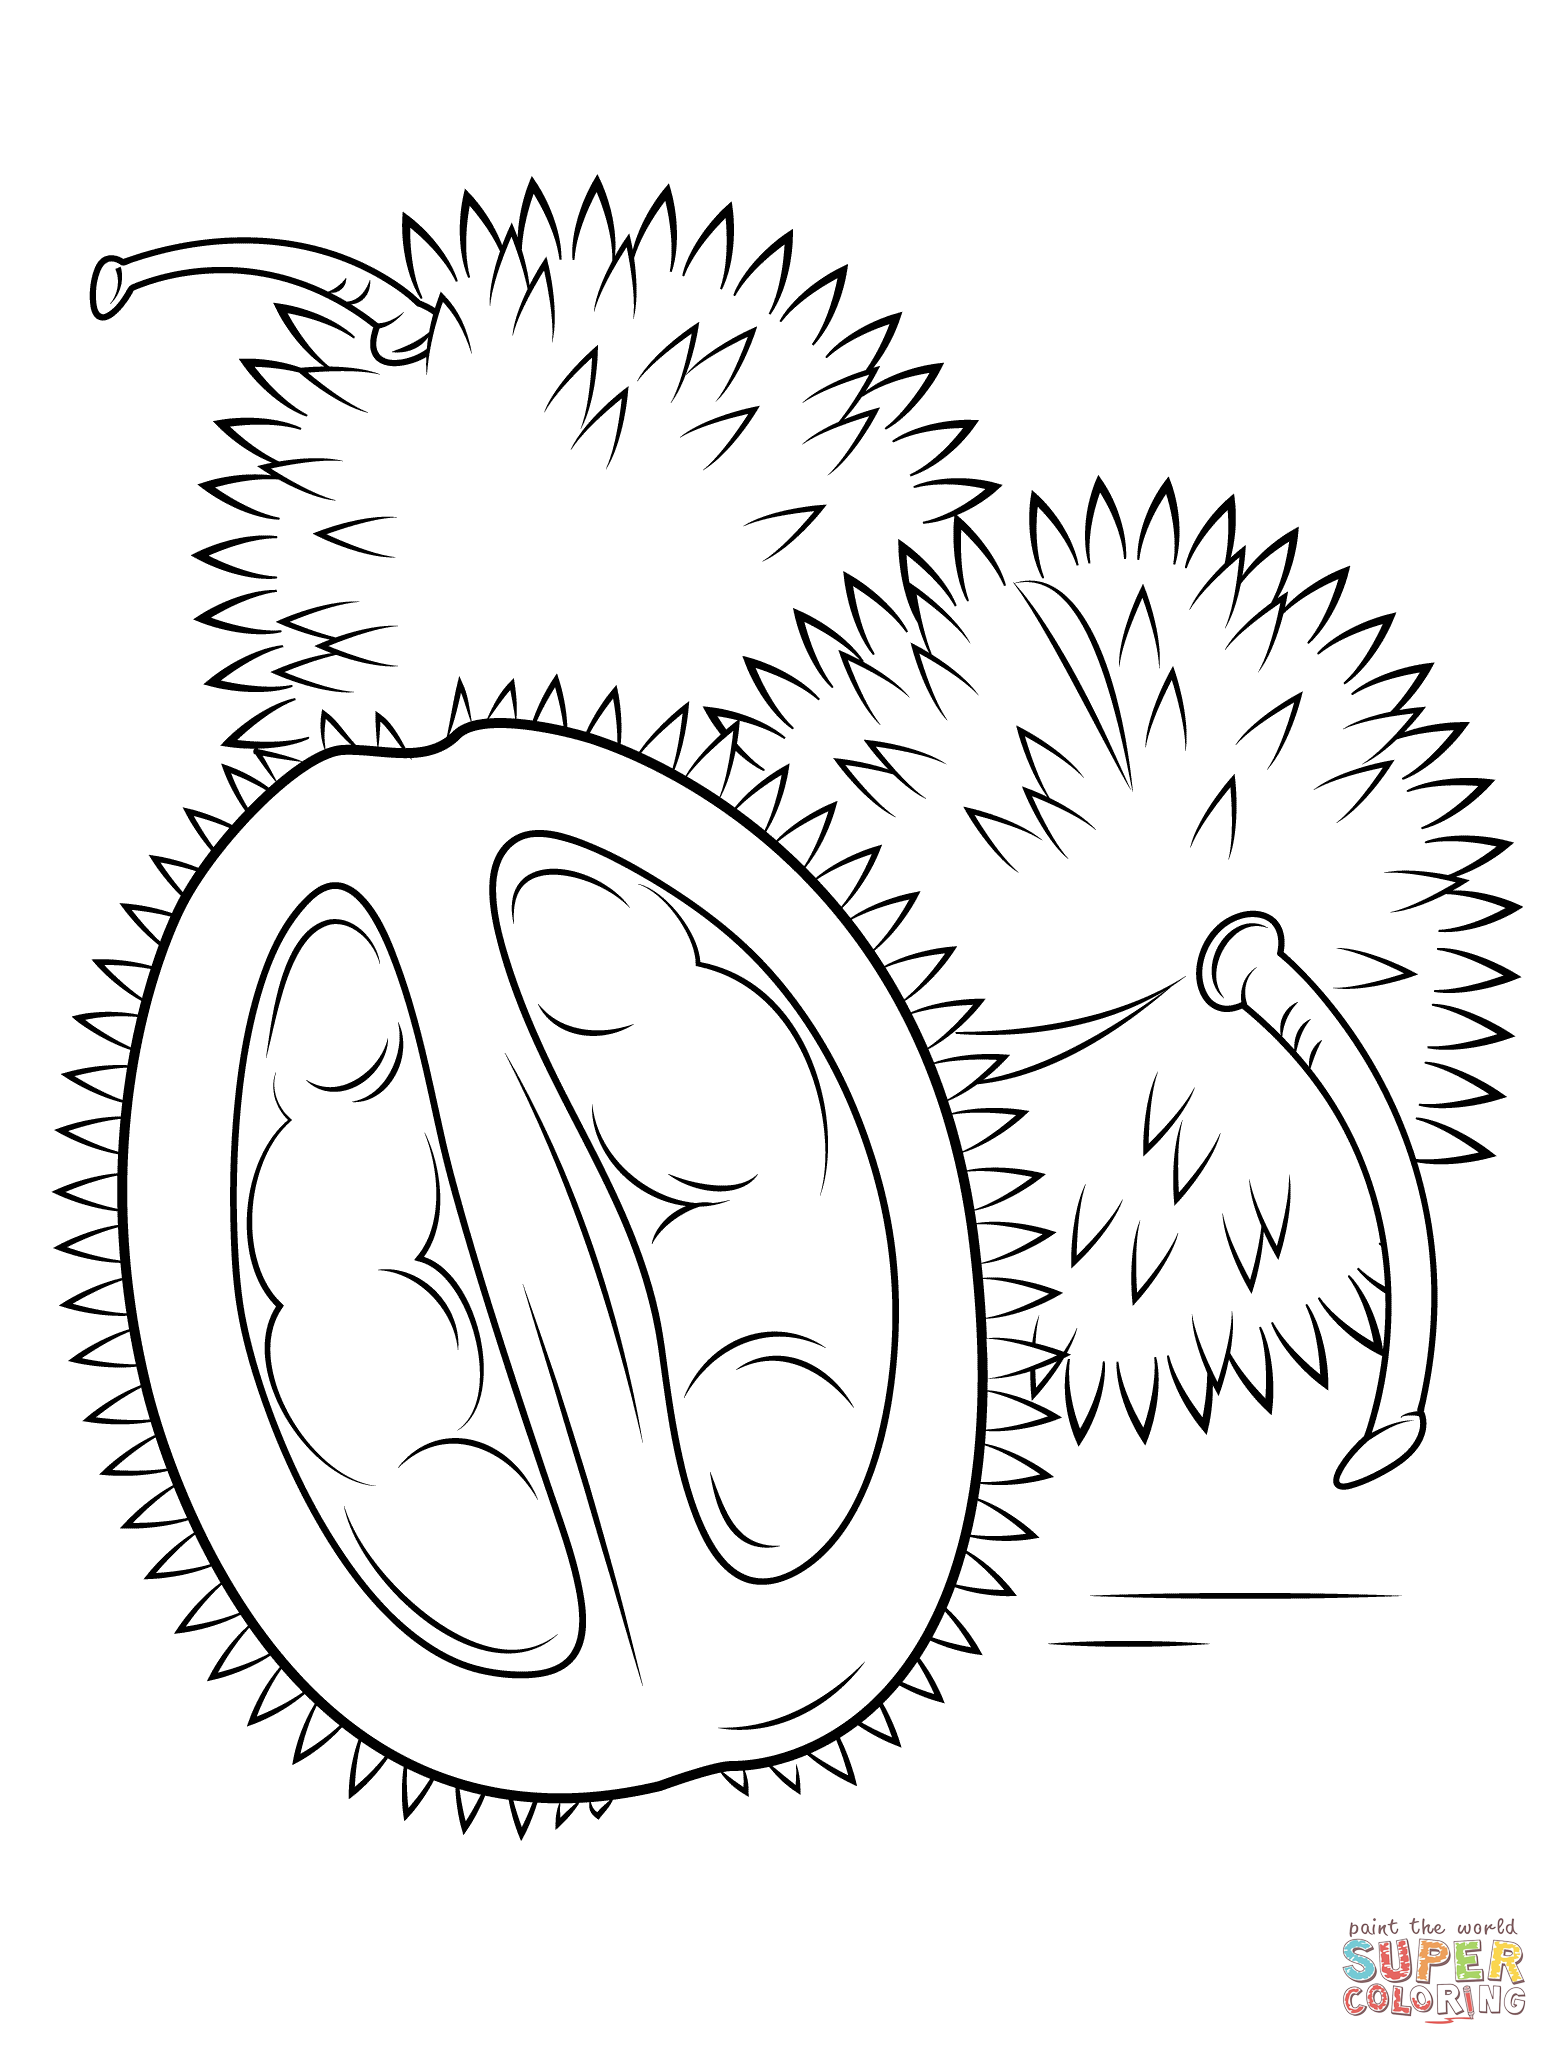 Ipad Coloring Pages Clipartsco